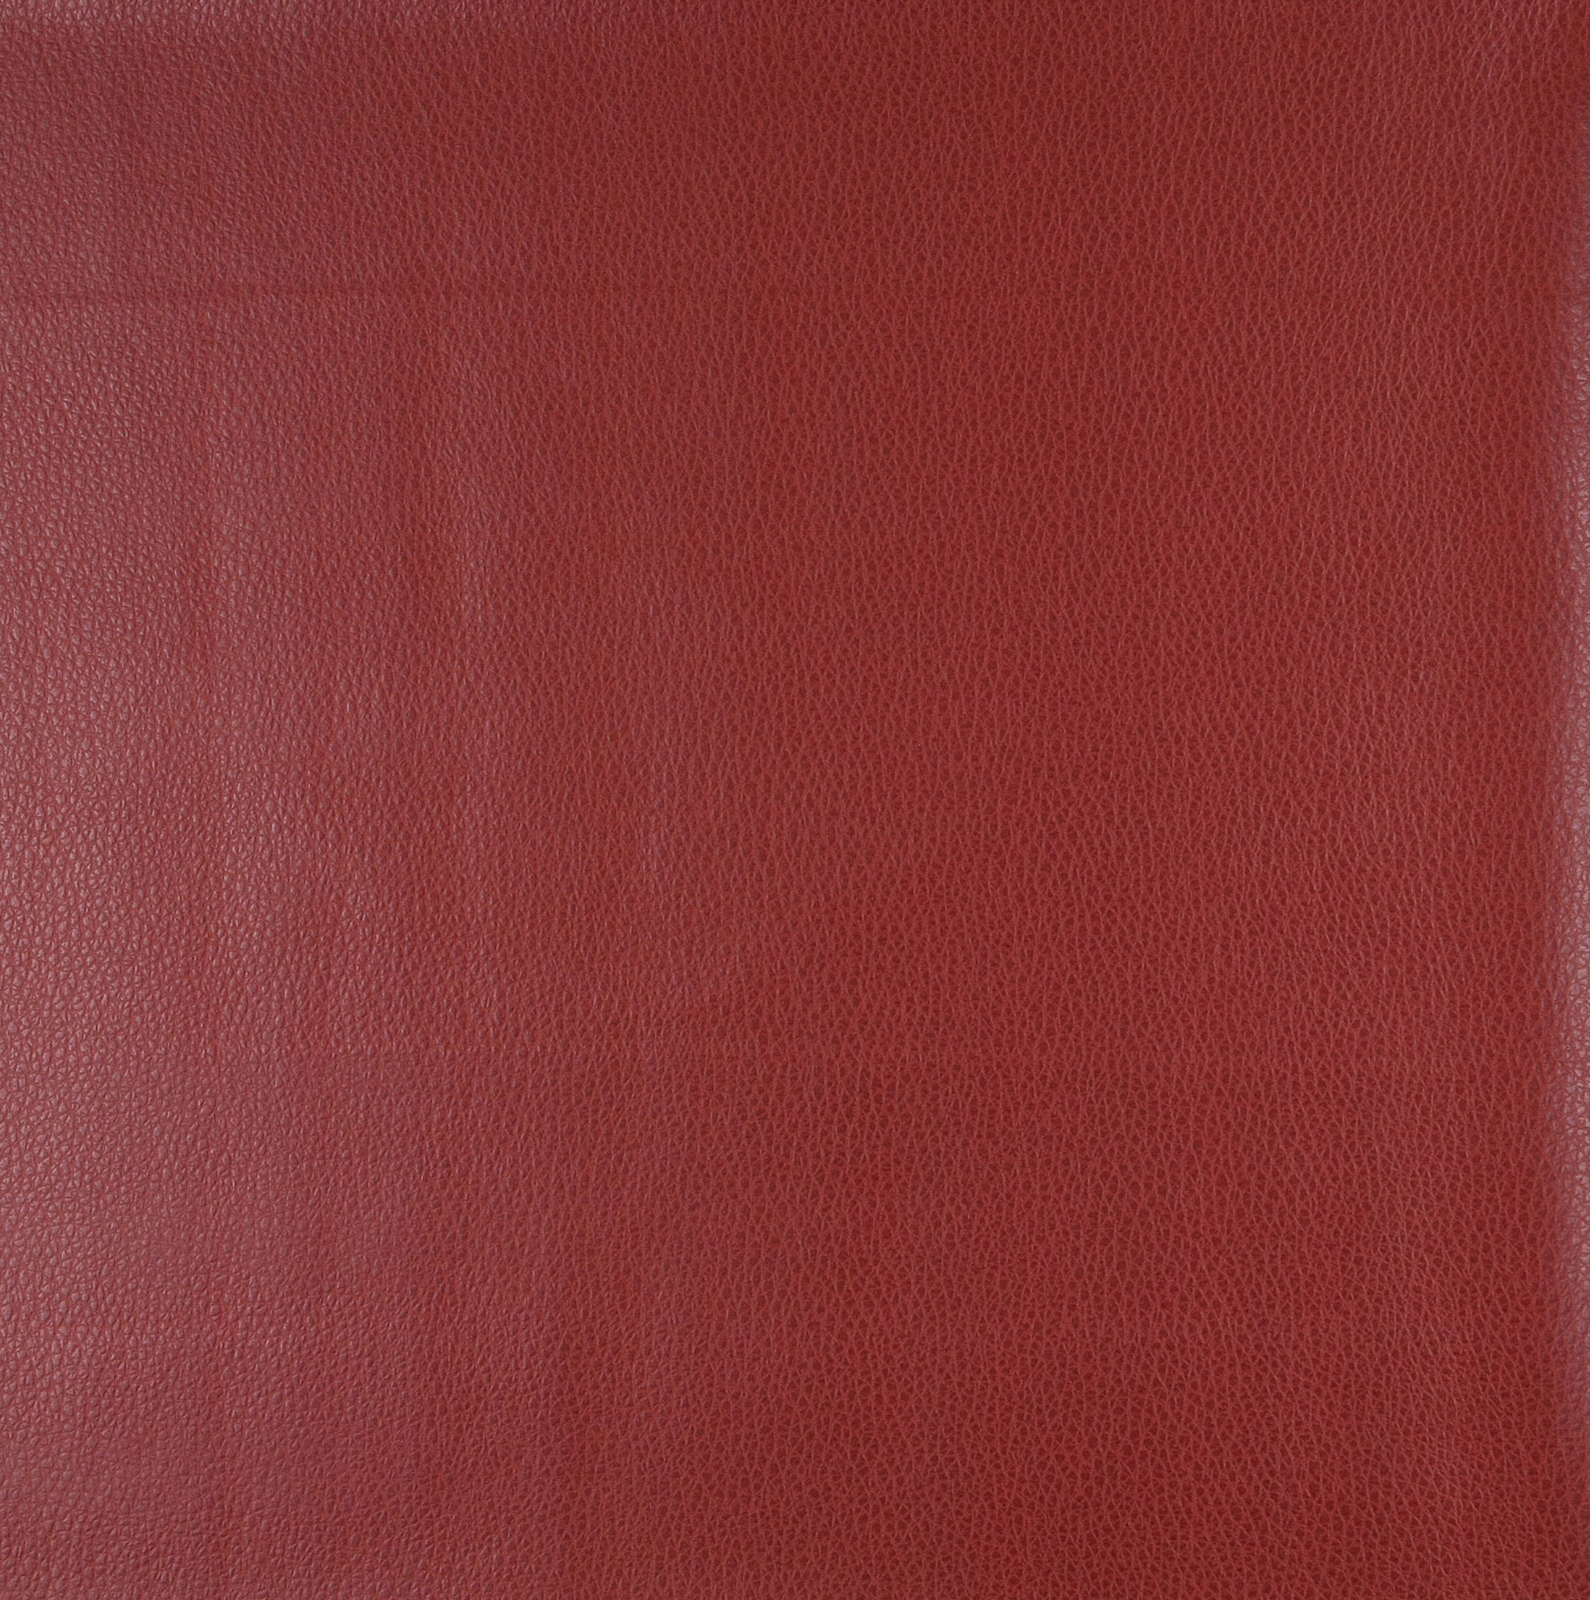 54 wide g219 clove red upholstery faux leather by the for Red leather fabric